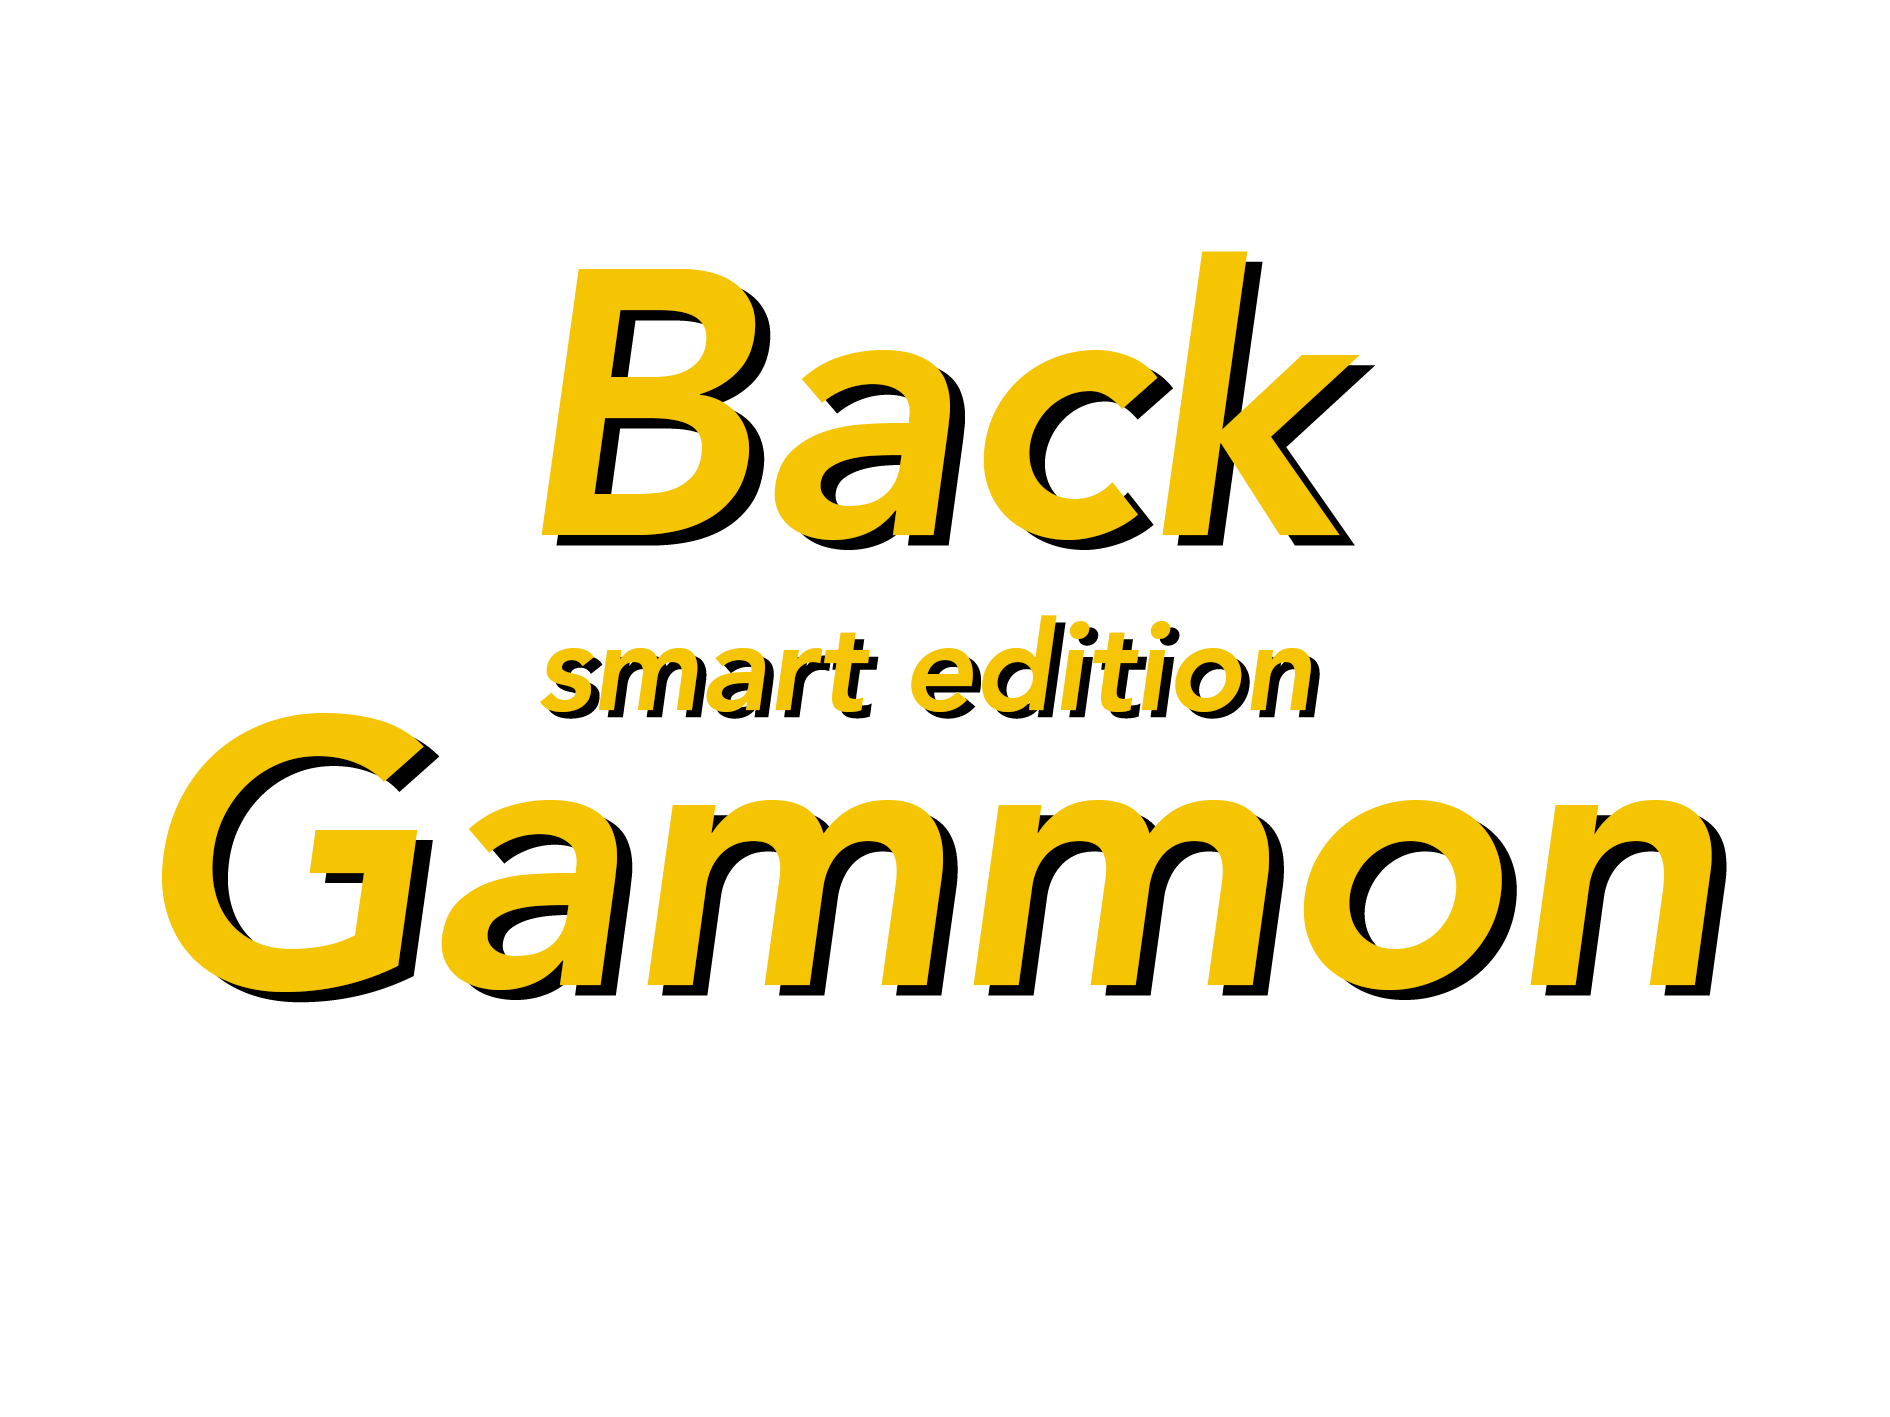 Back Gammon Retina Logo